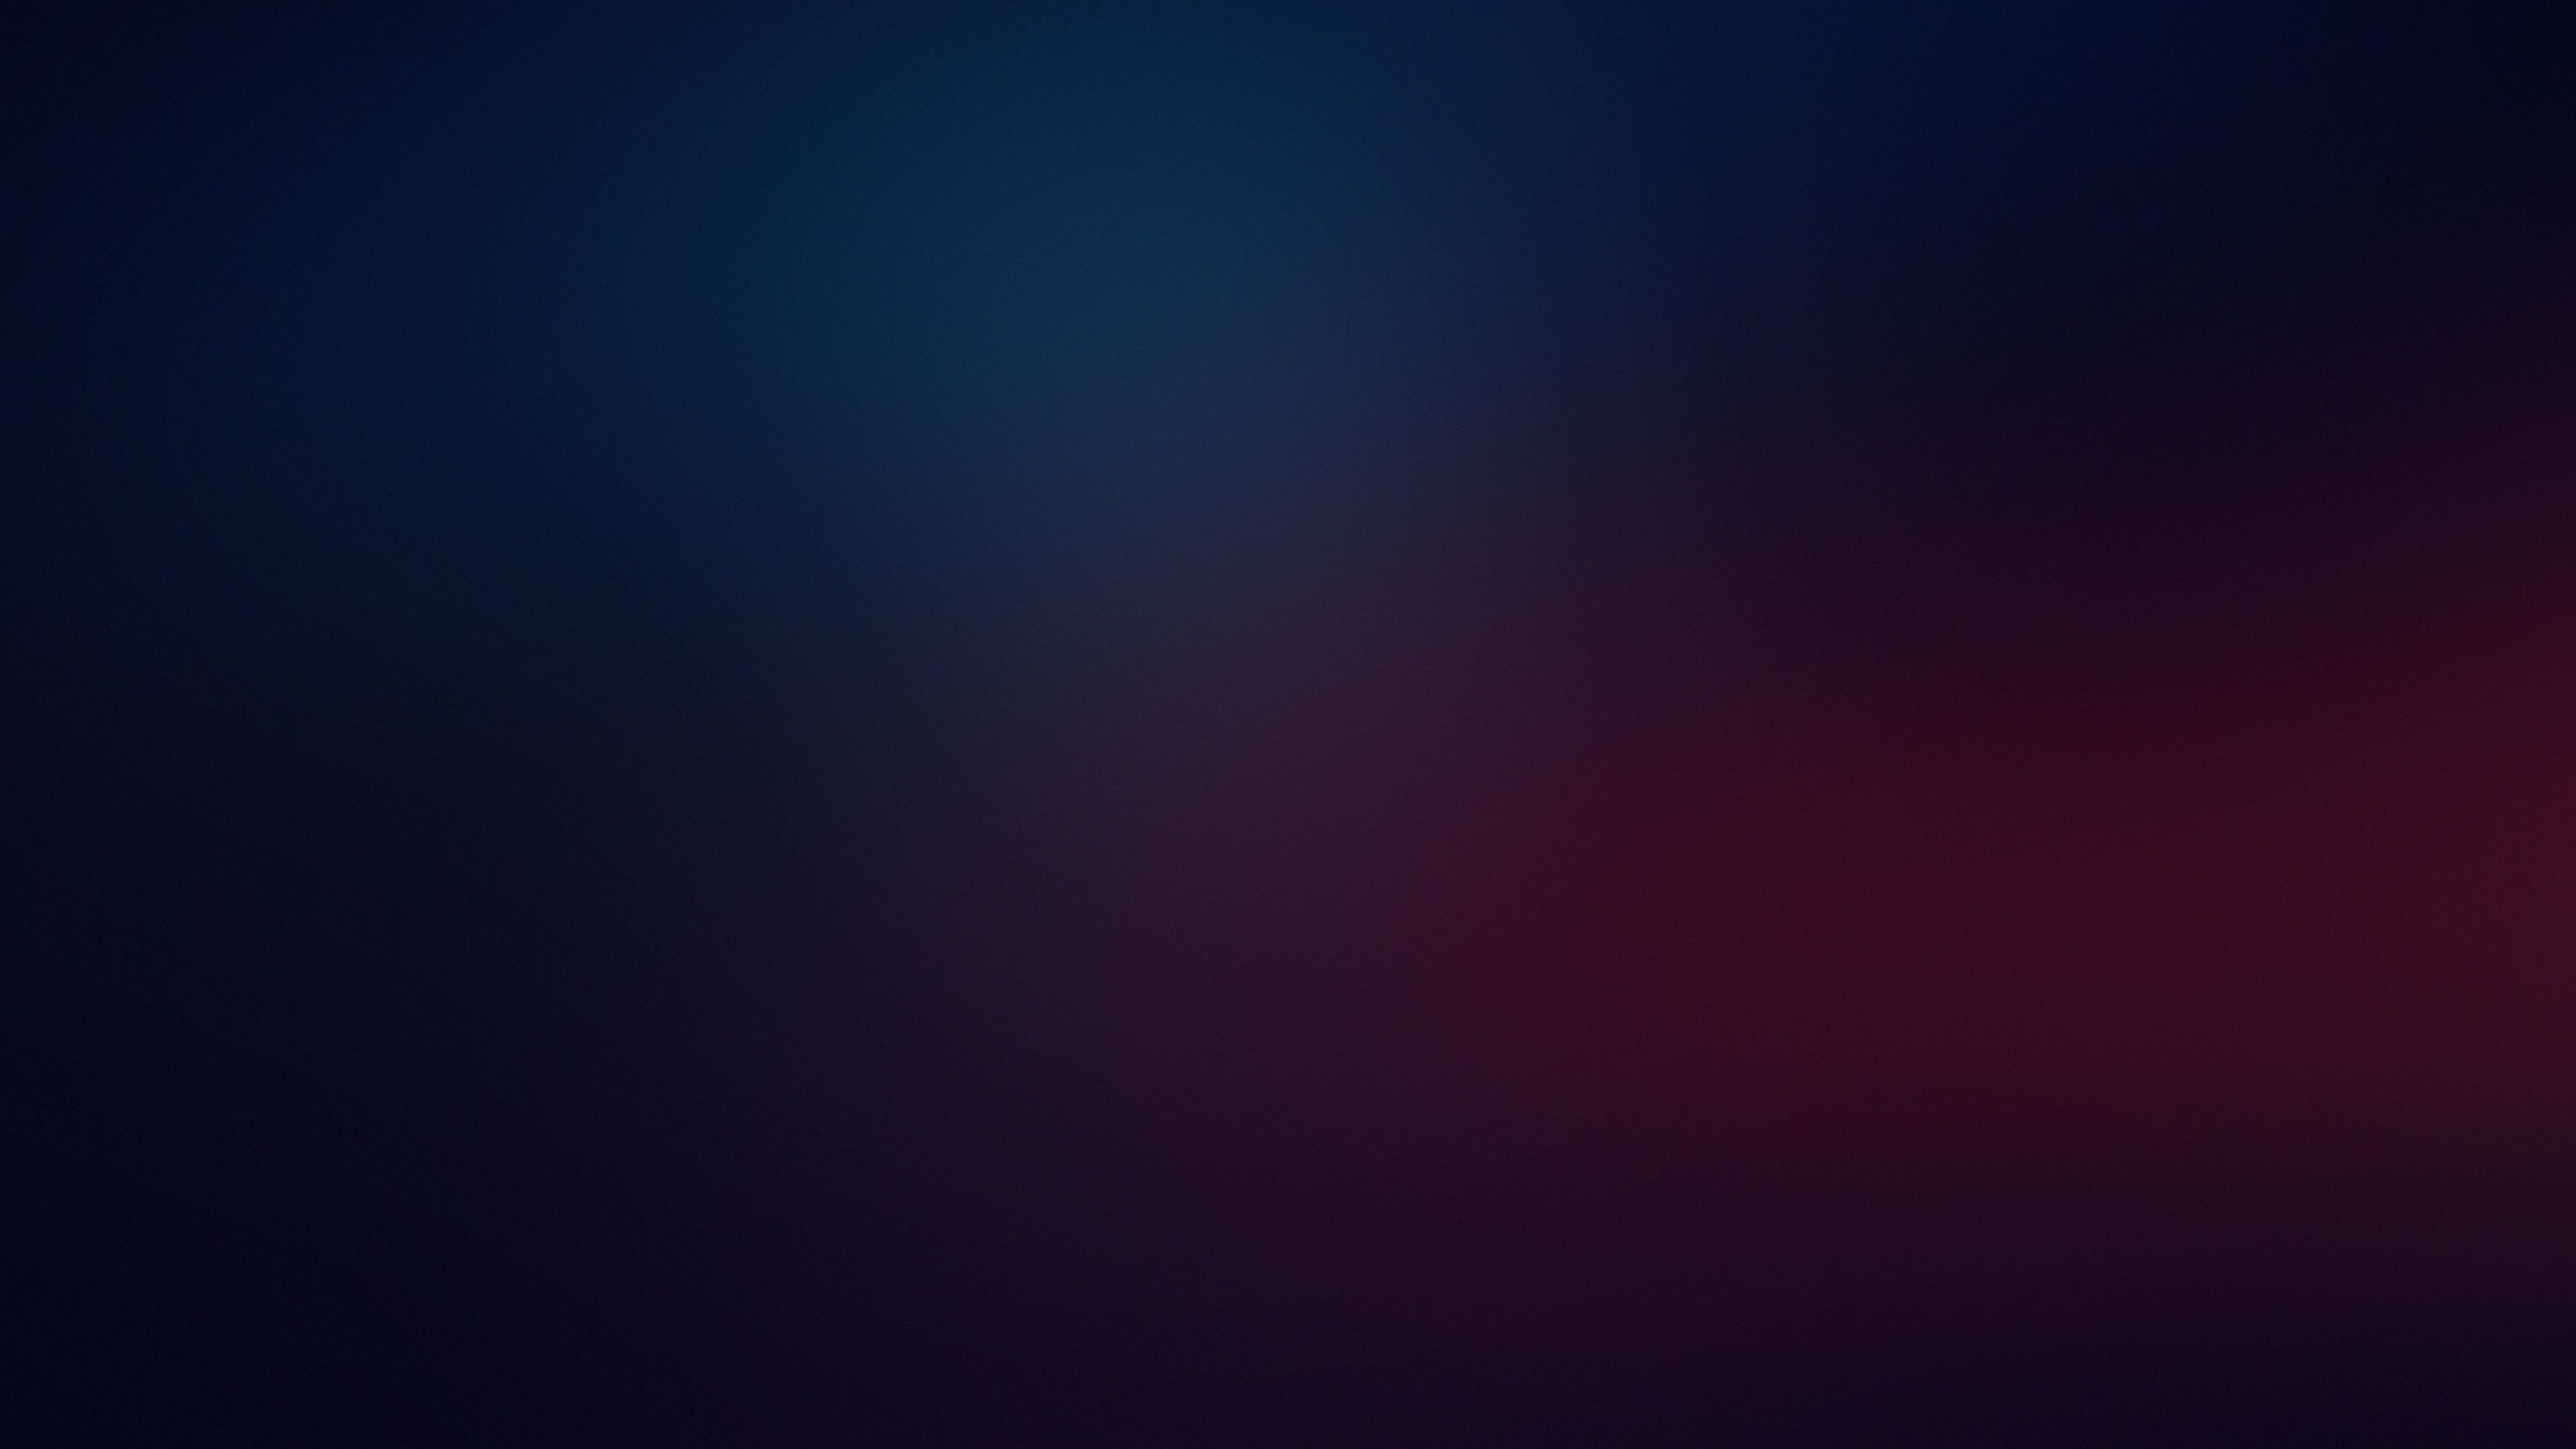 Dark Blur Abstract 4k Hd Wallpapers Deviantart Wallpapers Blur Wallpapers Abstract Wallpap In 2020 Black And Blue Wallpaper Blue Wallpaper Iphone Simple Backgrounds